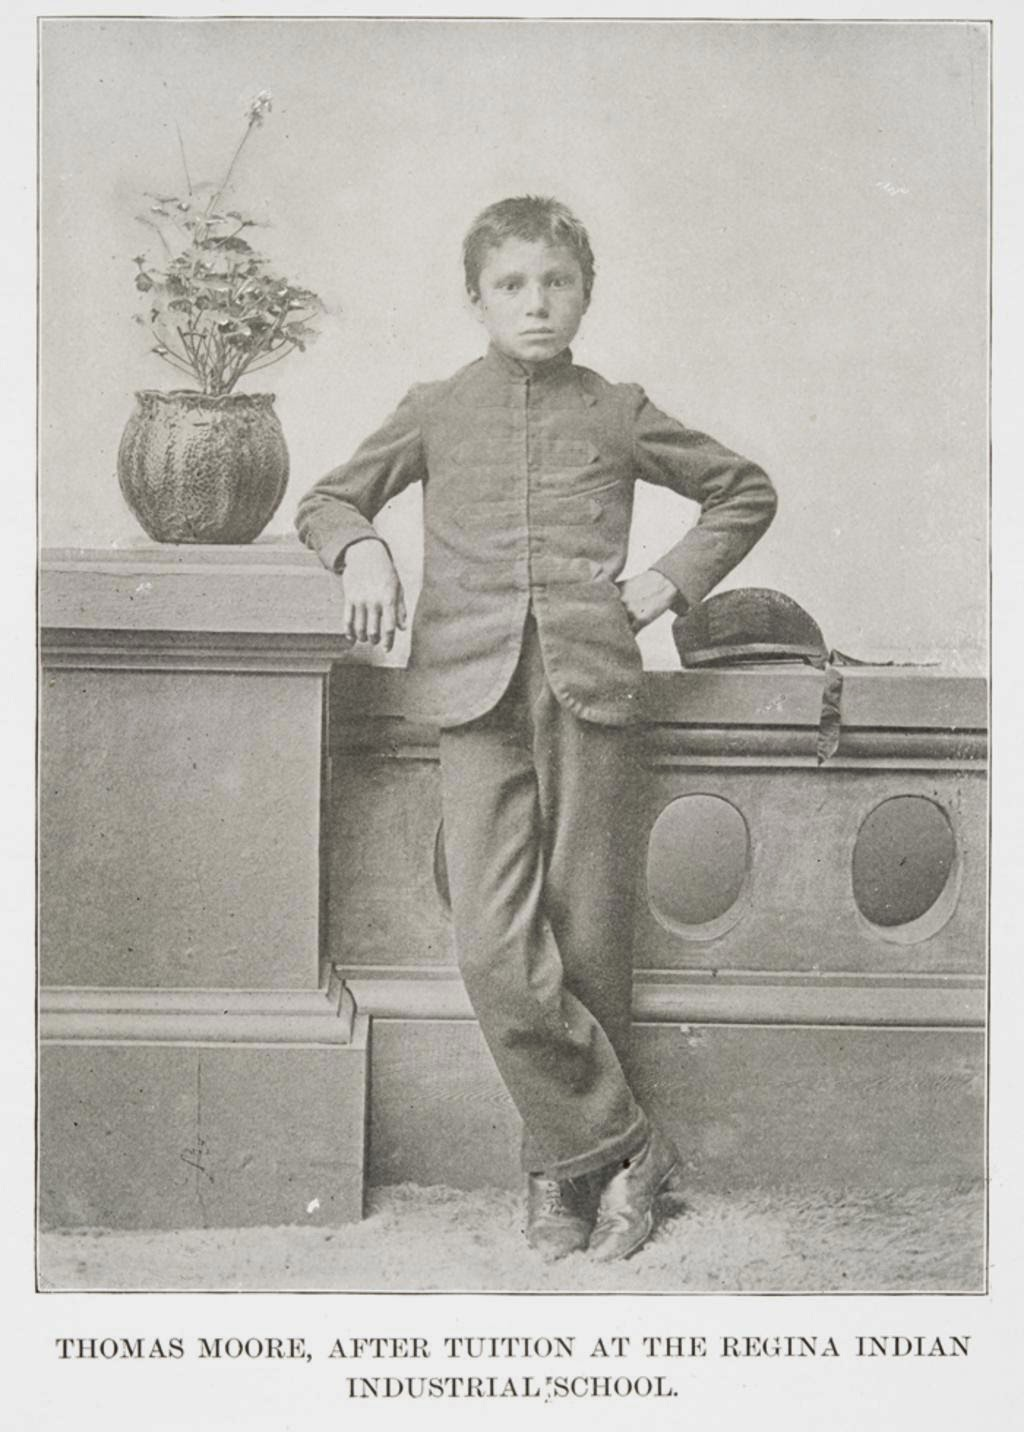 Thomas Moore after entering residential school wearing slacks and jacket.